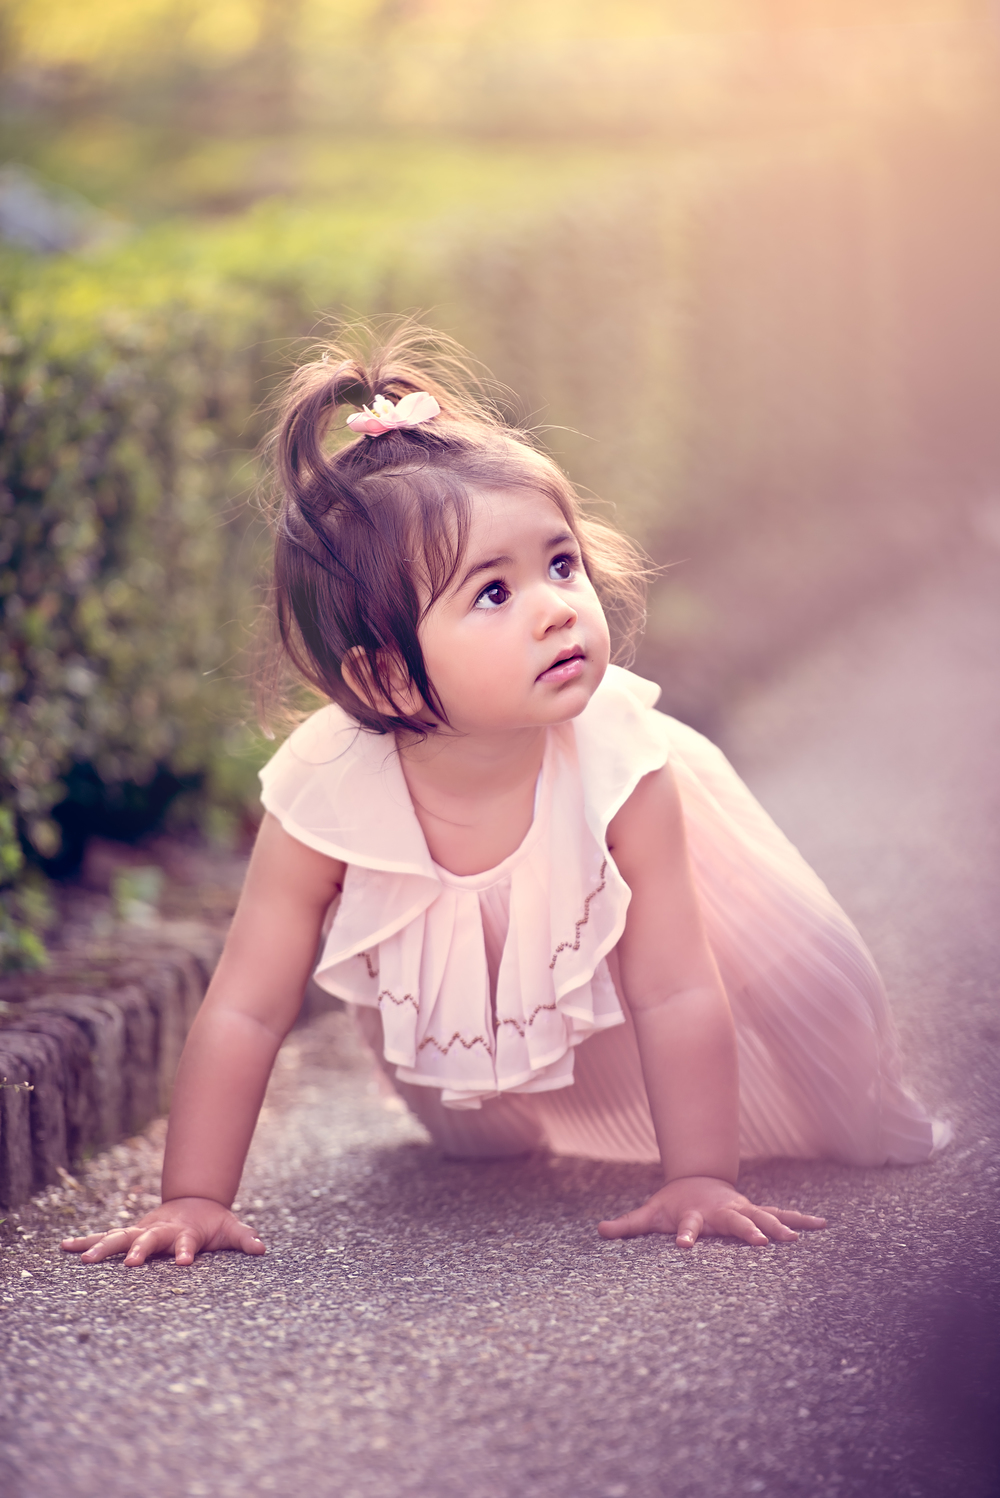 Holland Park child photographer | London